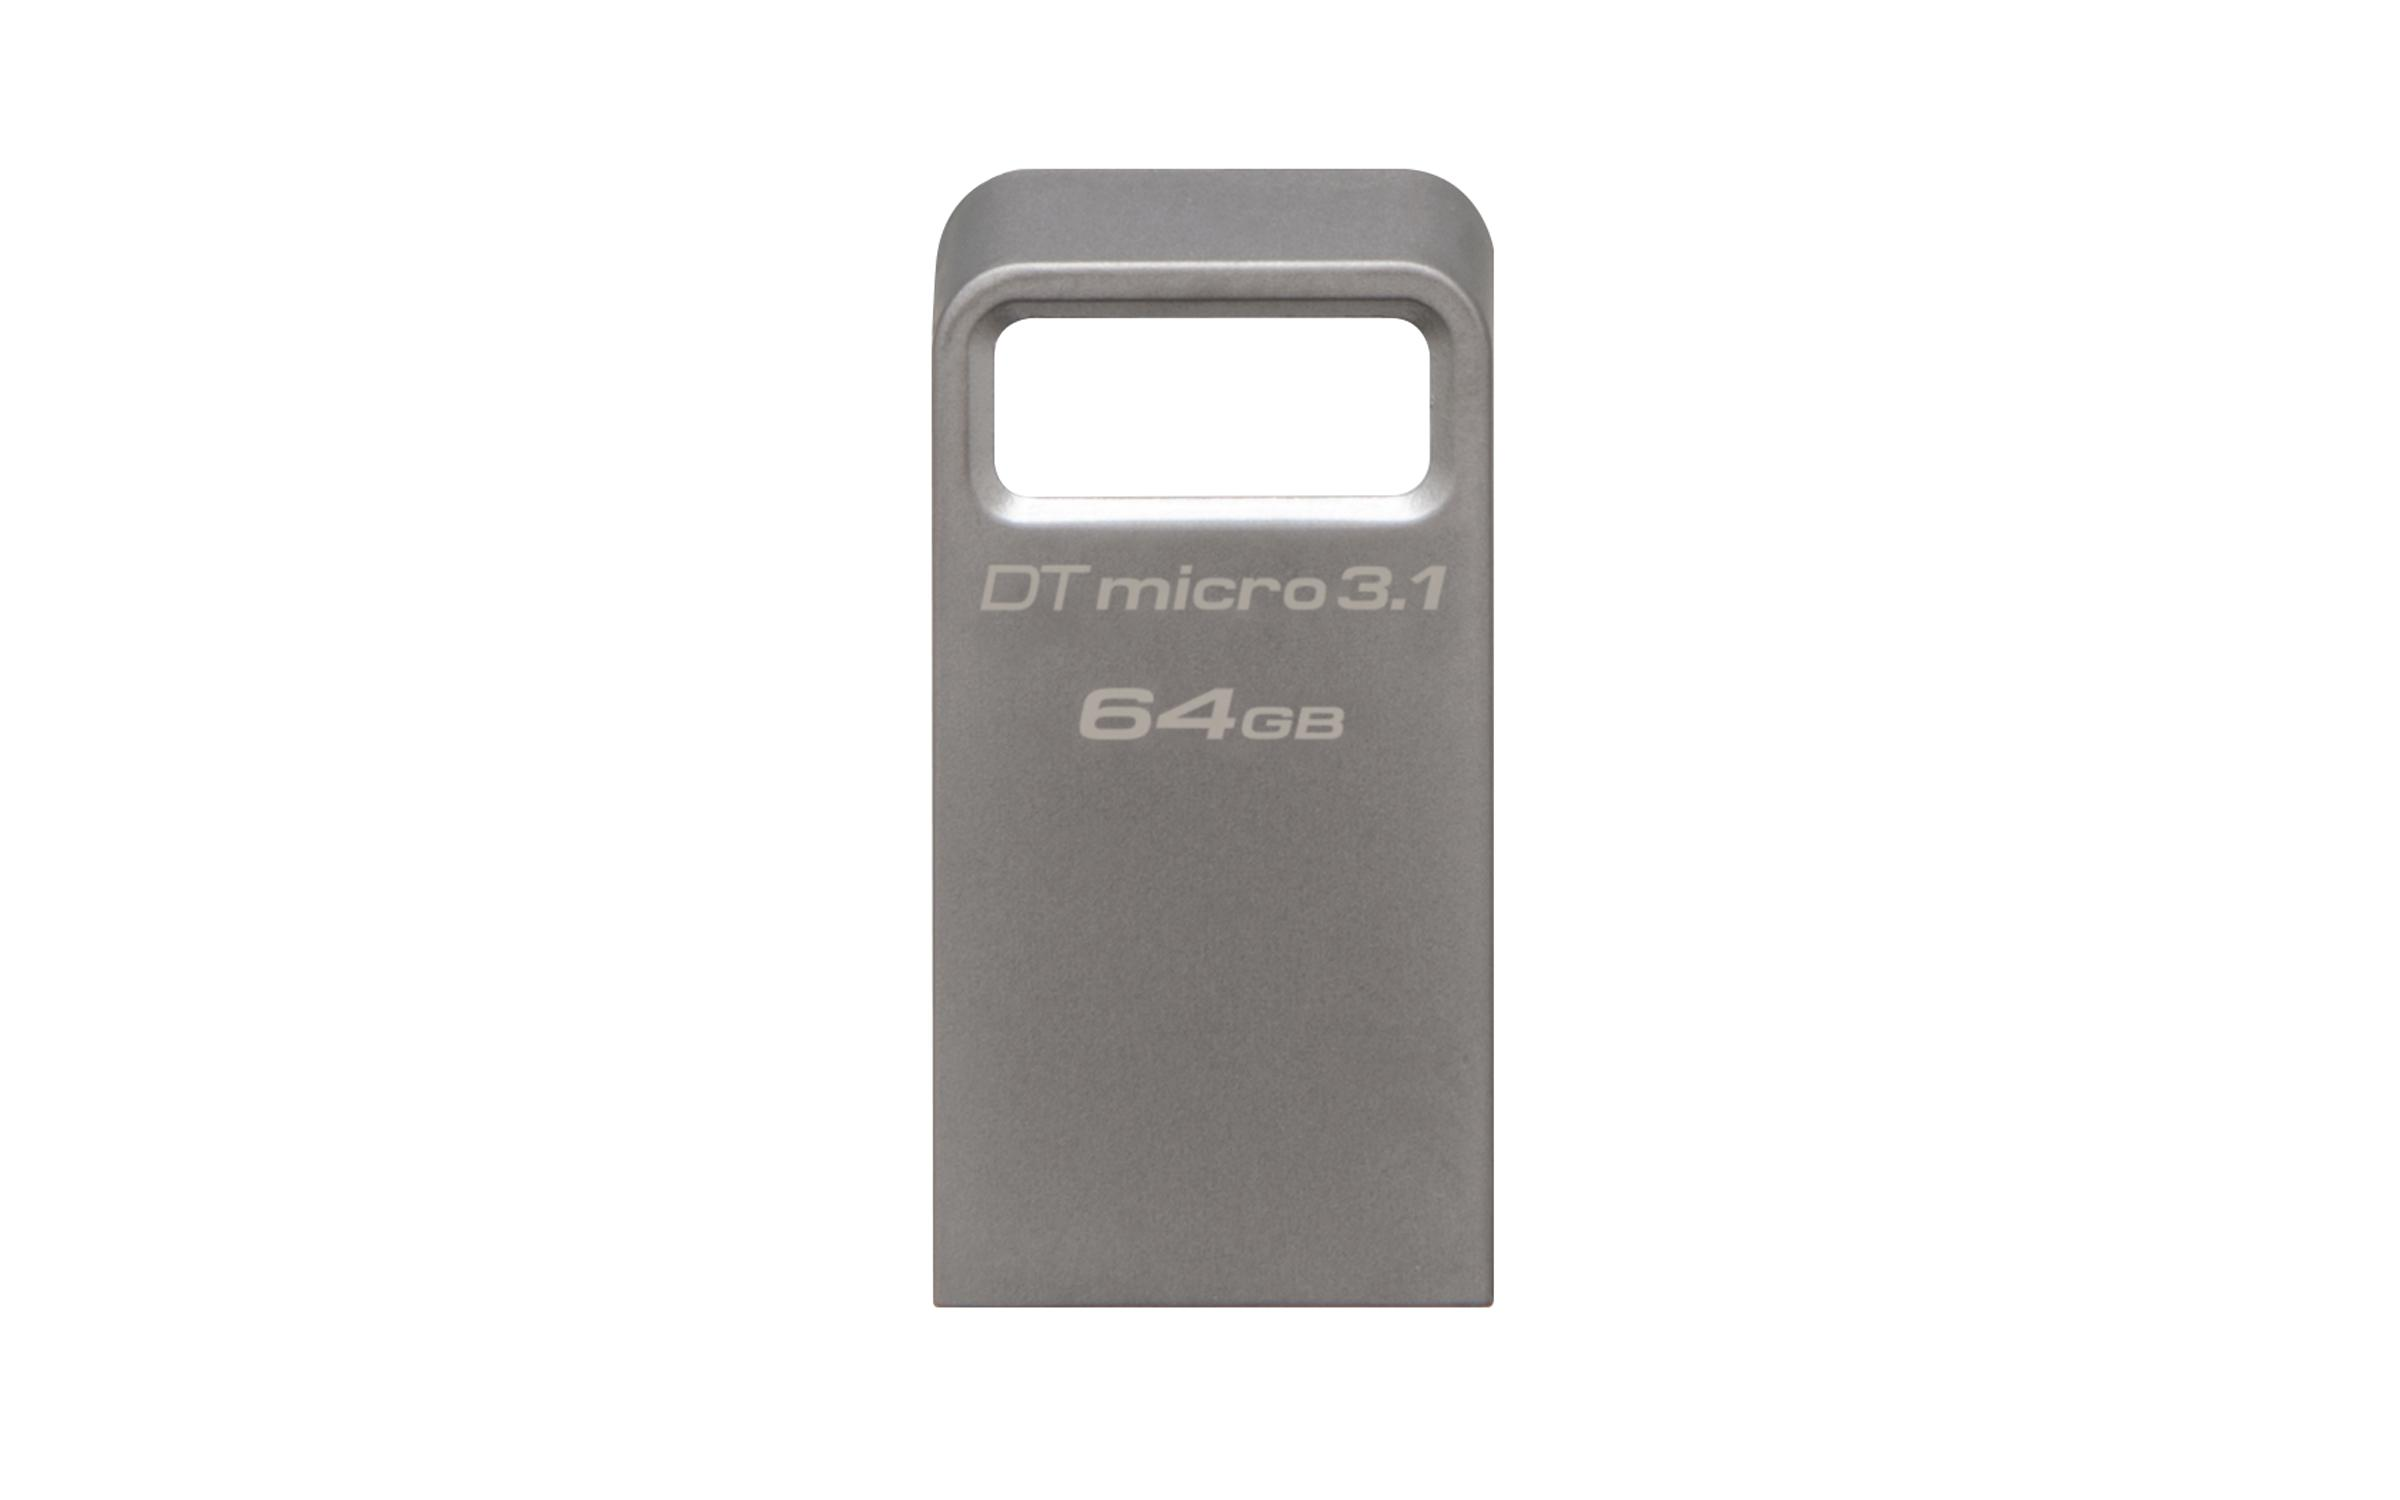 USB памет KINGSTON DataTraveler Micro 3.1 64GB, USB 3.1, Сребрист